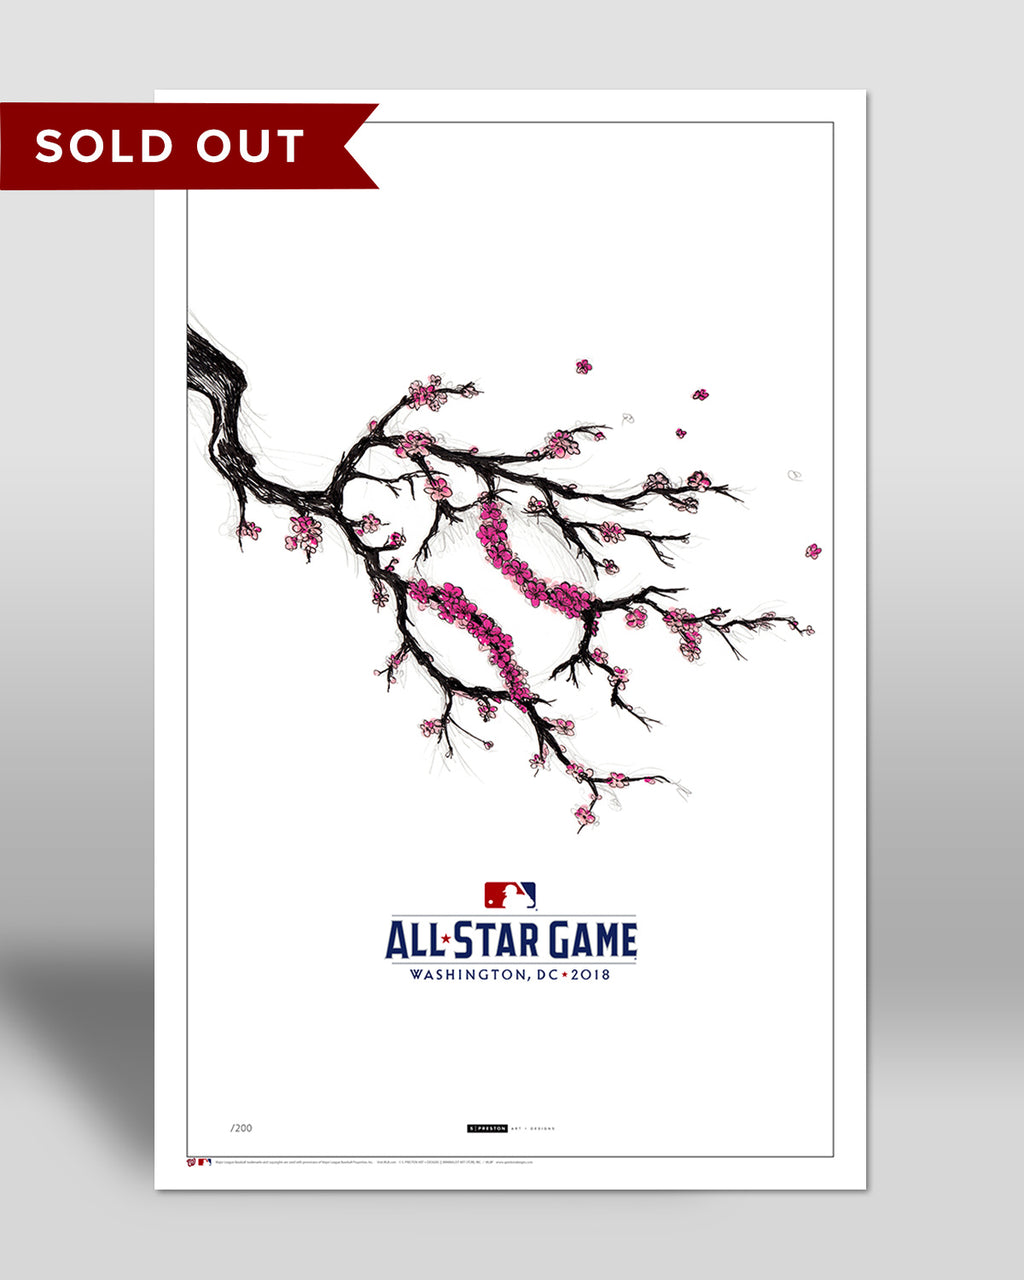 2018 All Star Game Sketch (Cherry Blossoms)